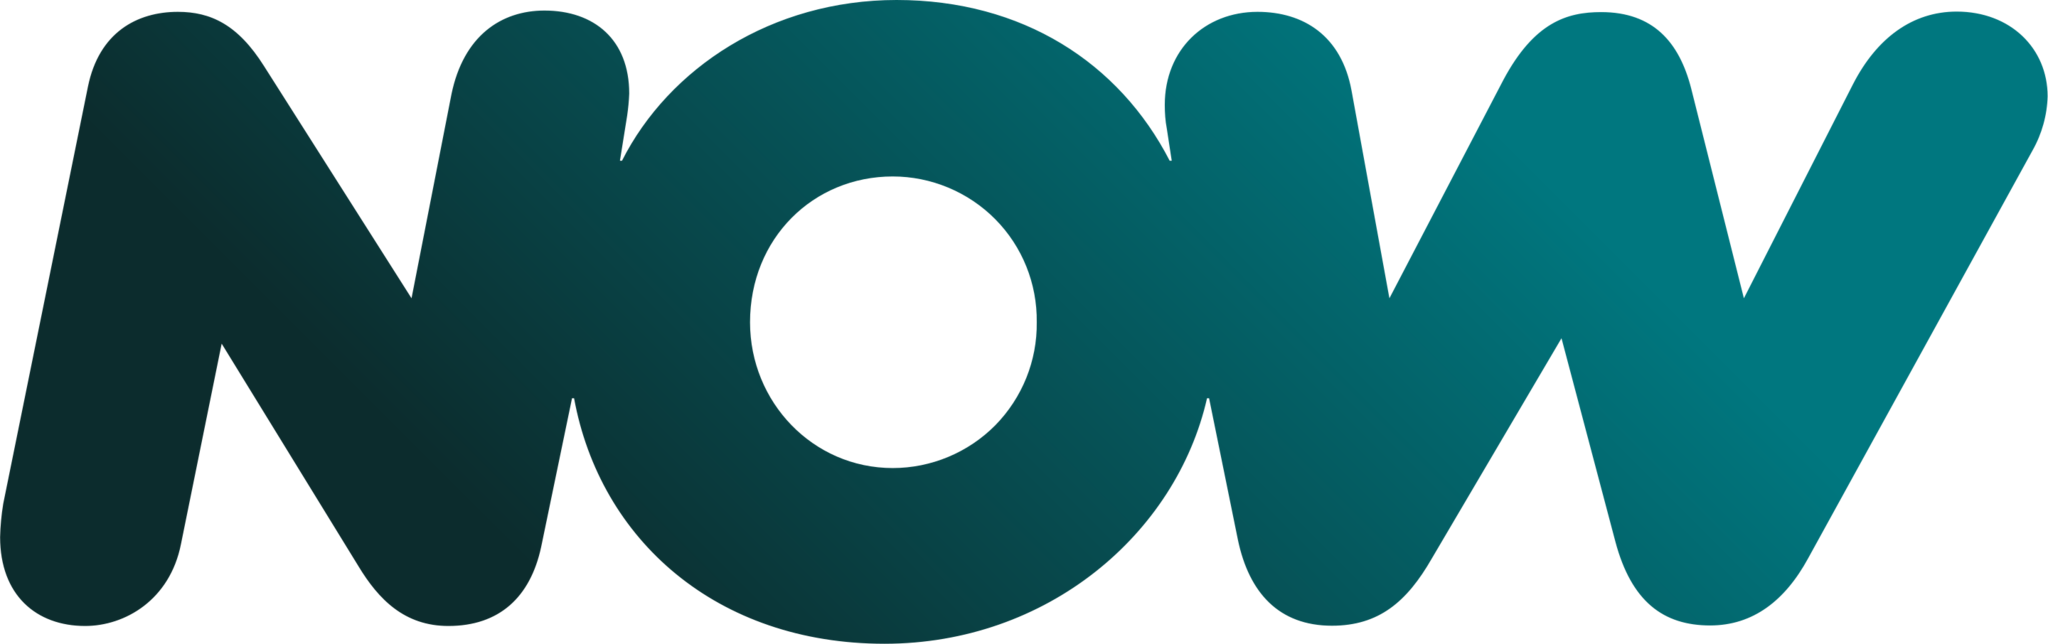 Now the logo